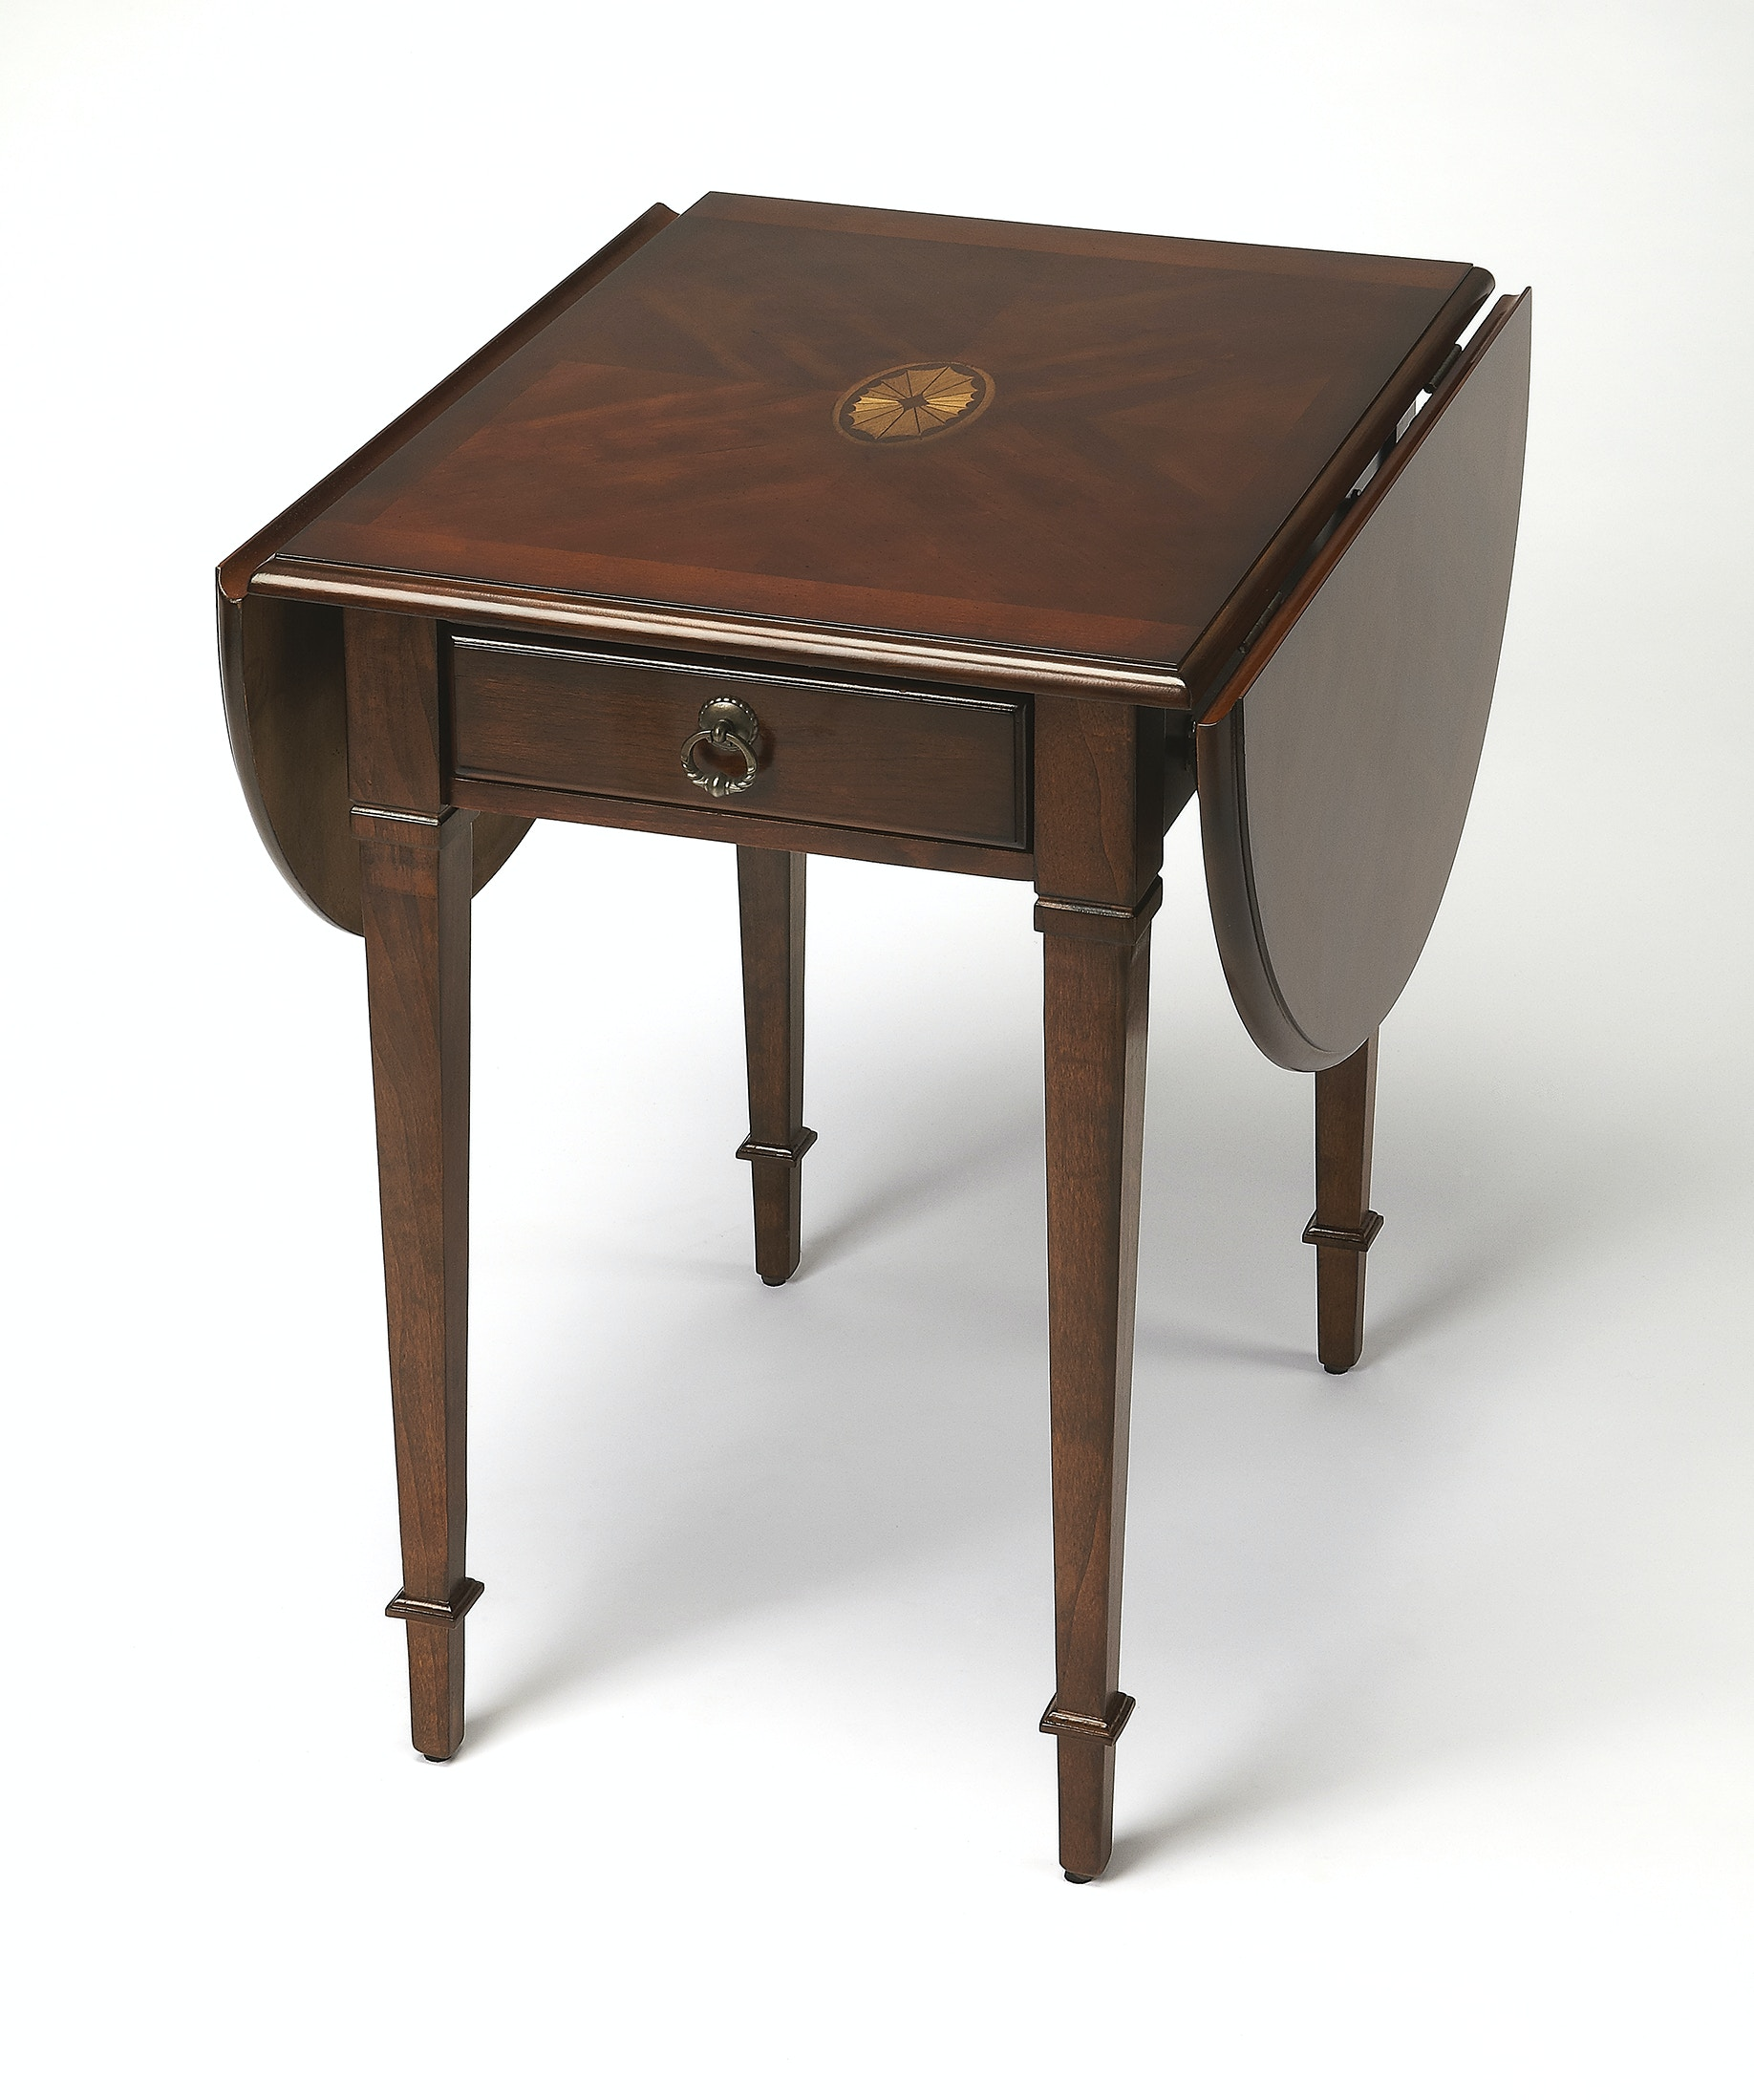 Merveilleux Butler Specialty Company Pembroke Table BU1576024 From Walter E. Smithe  Furniture + Design